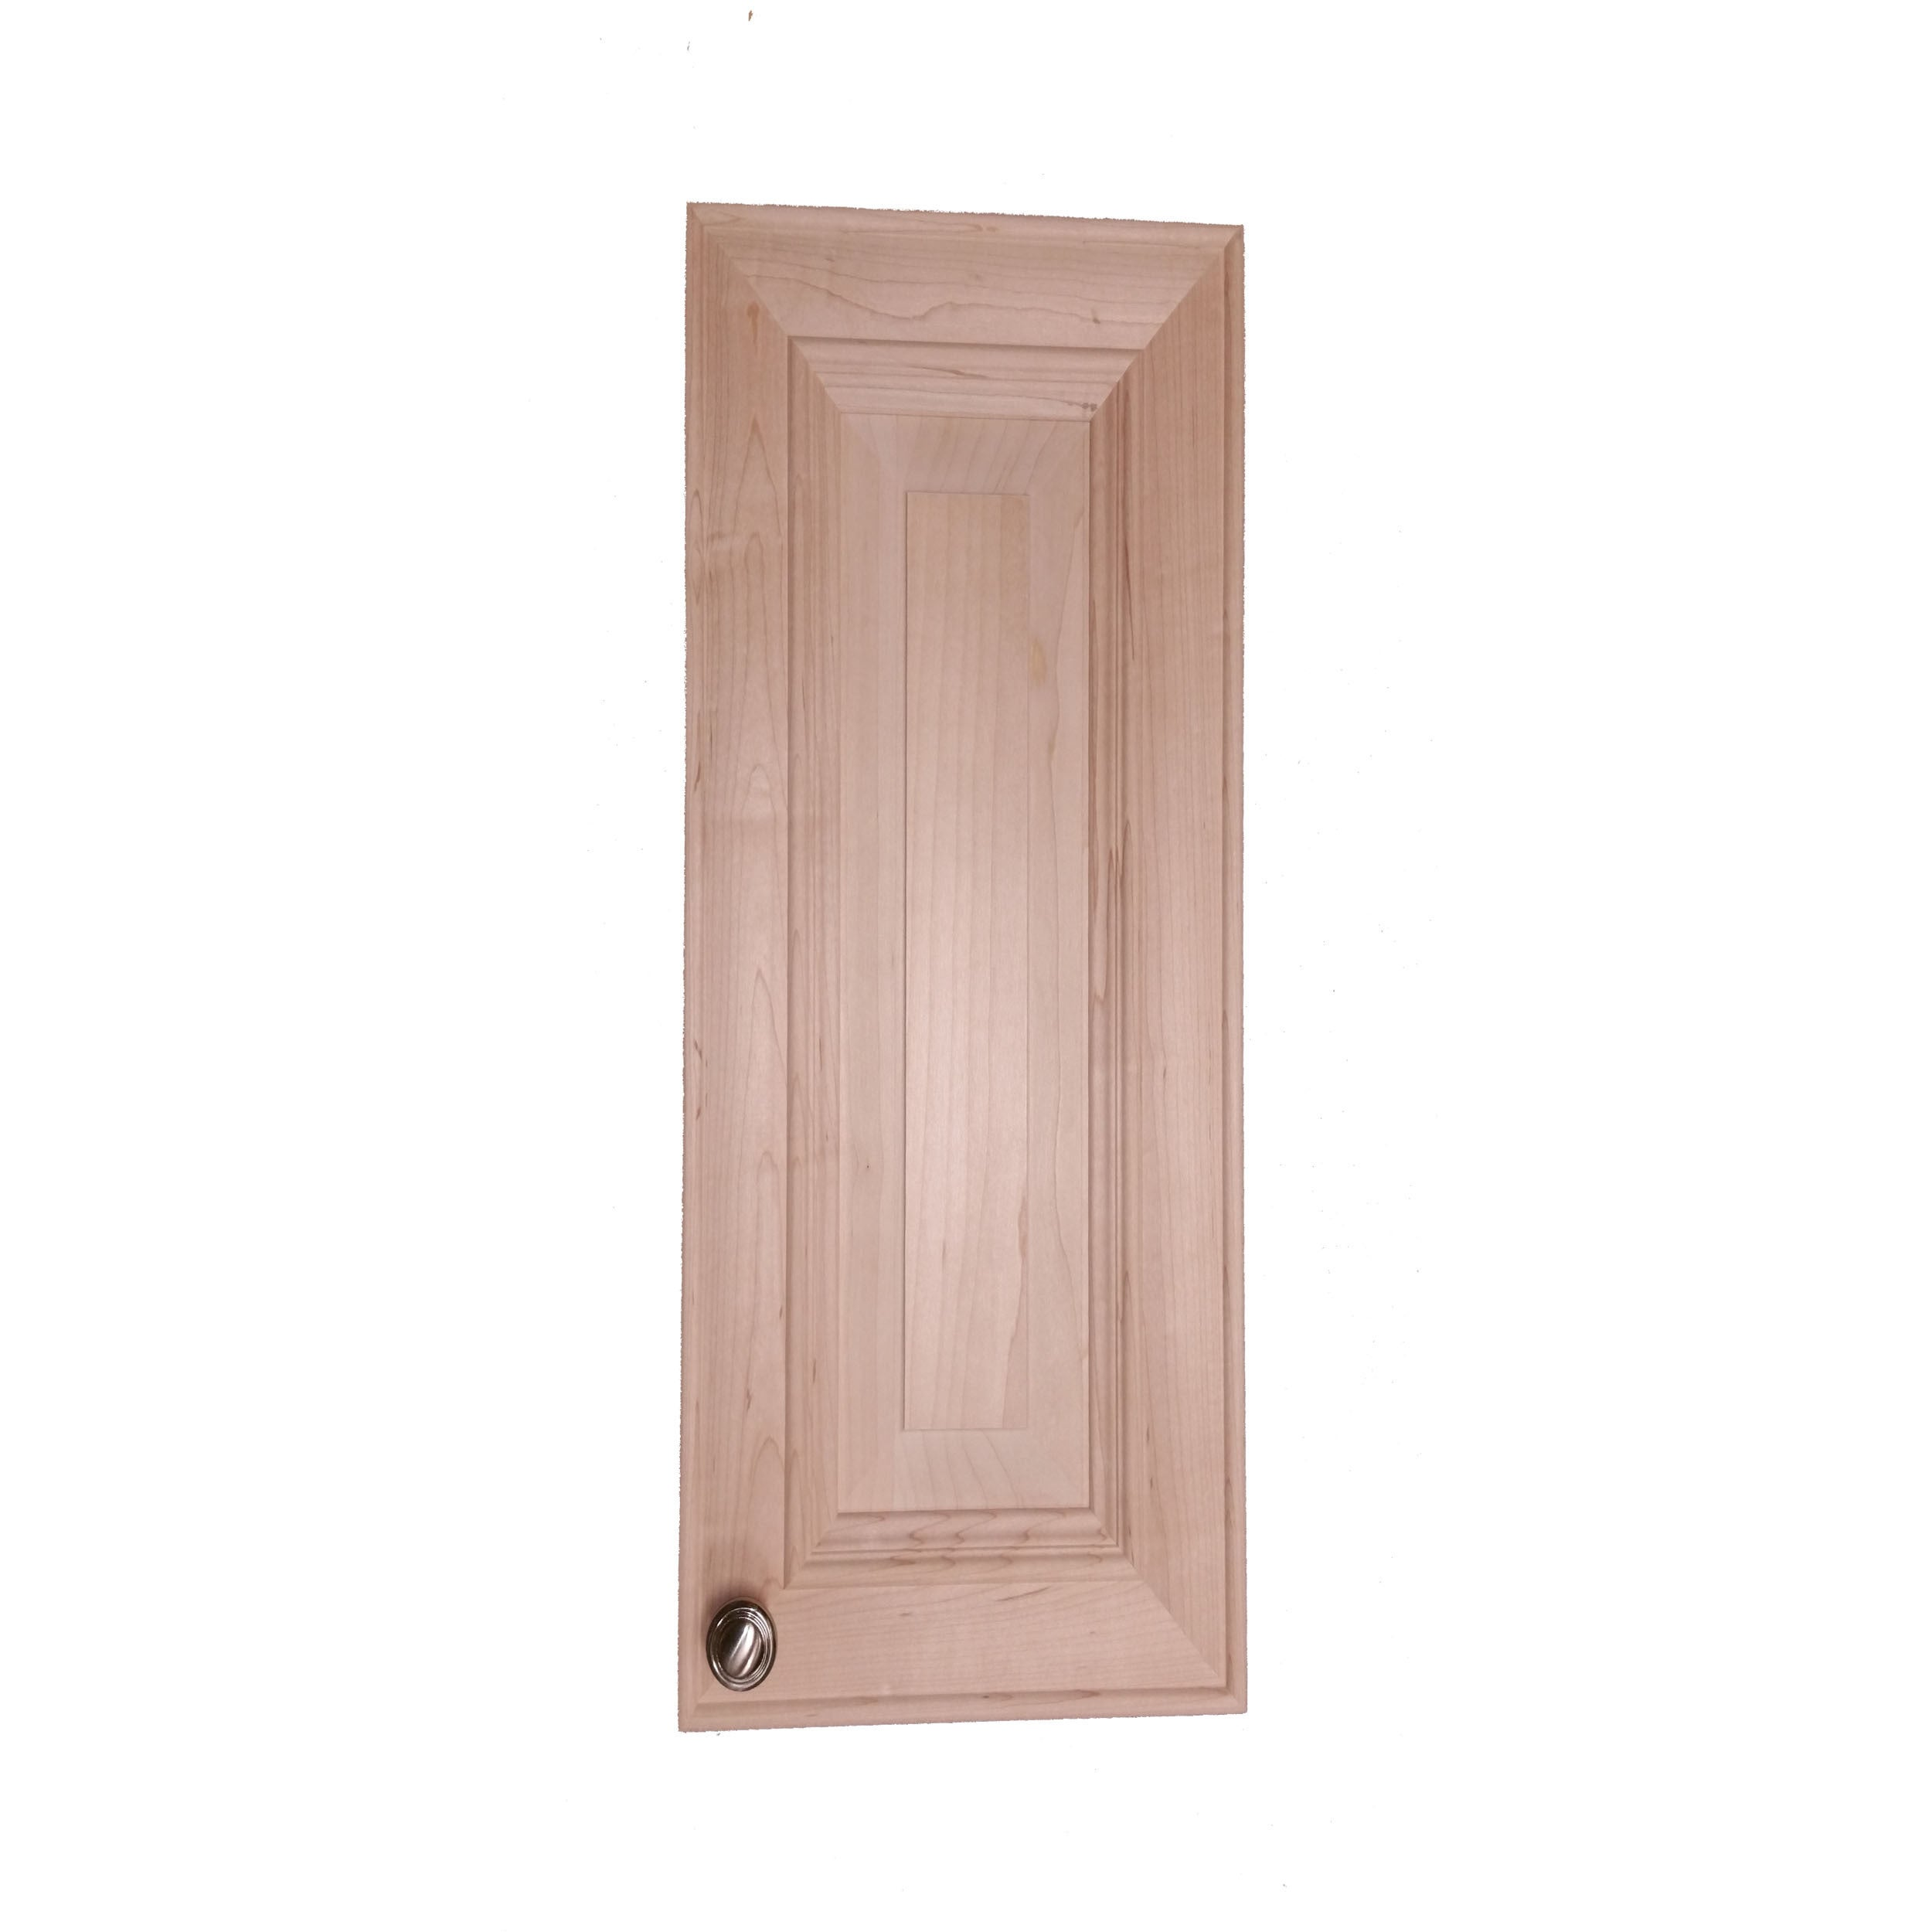 Kendall Wood 22 Inches High X 10 5 Wide 3 Deep Frameless Narrow Recessed Bath Storage Cabinet Free Shipping Today